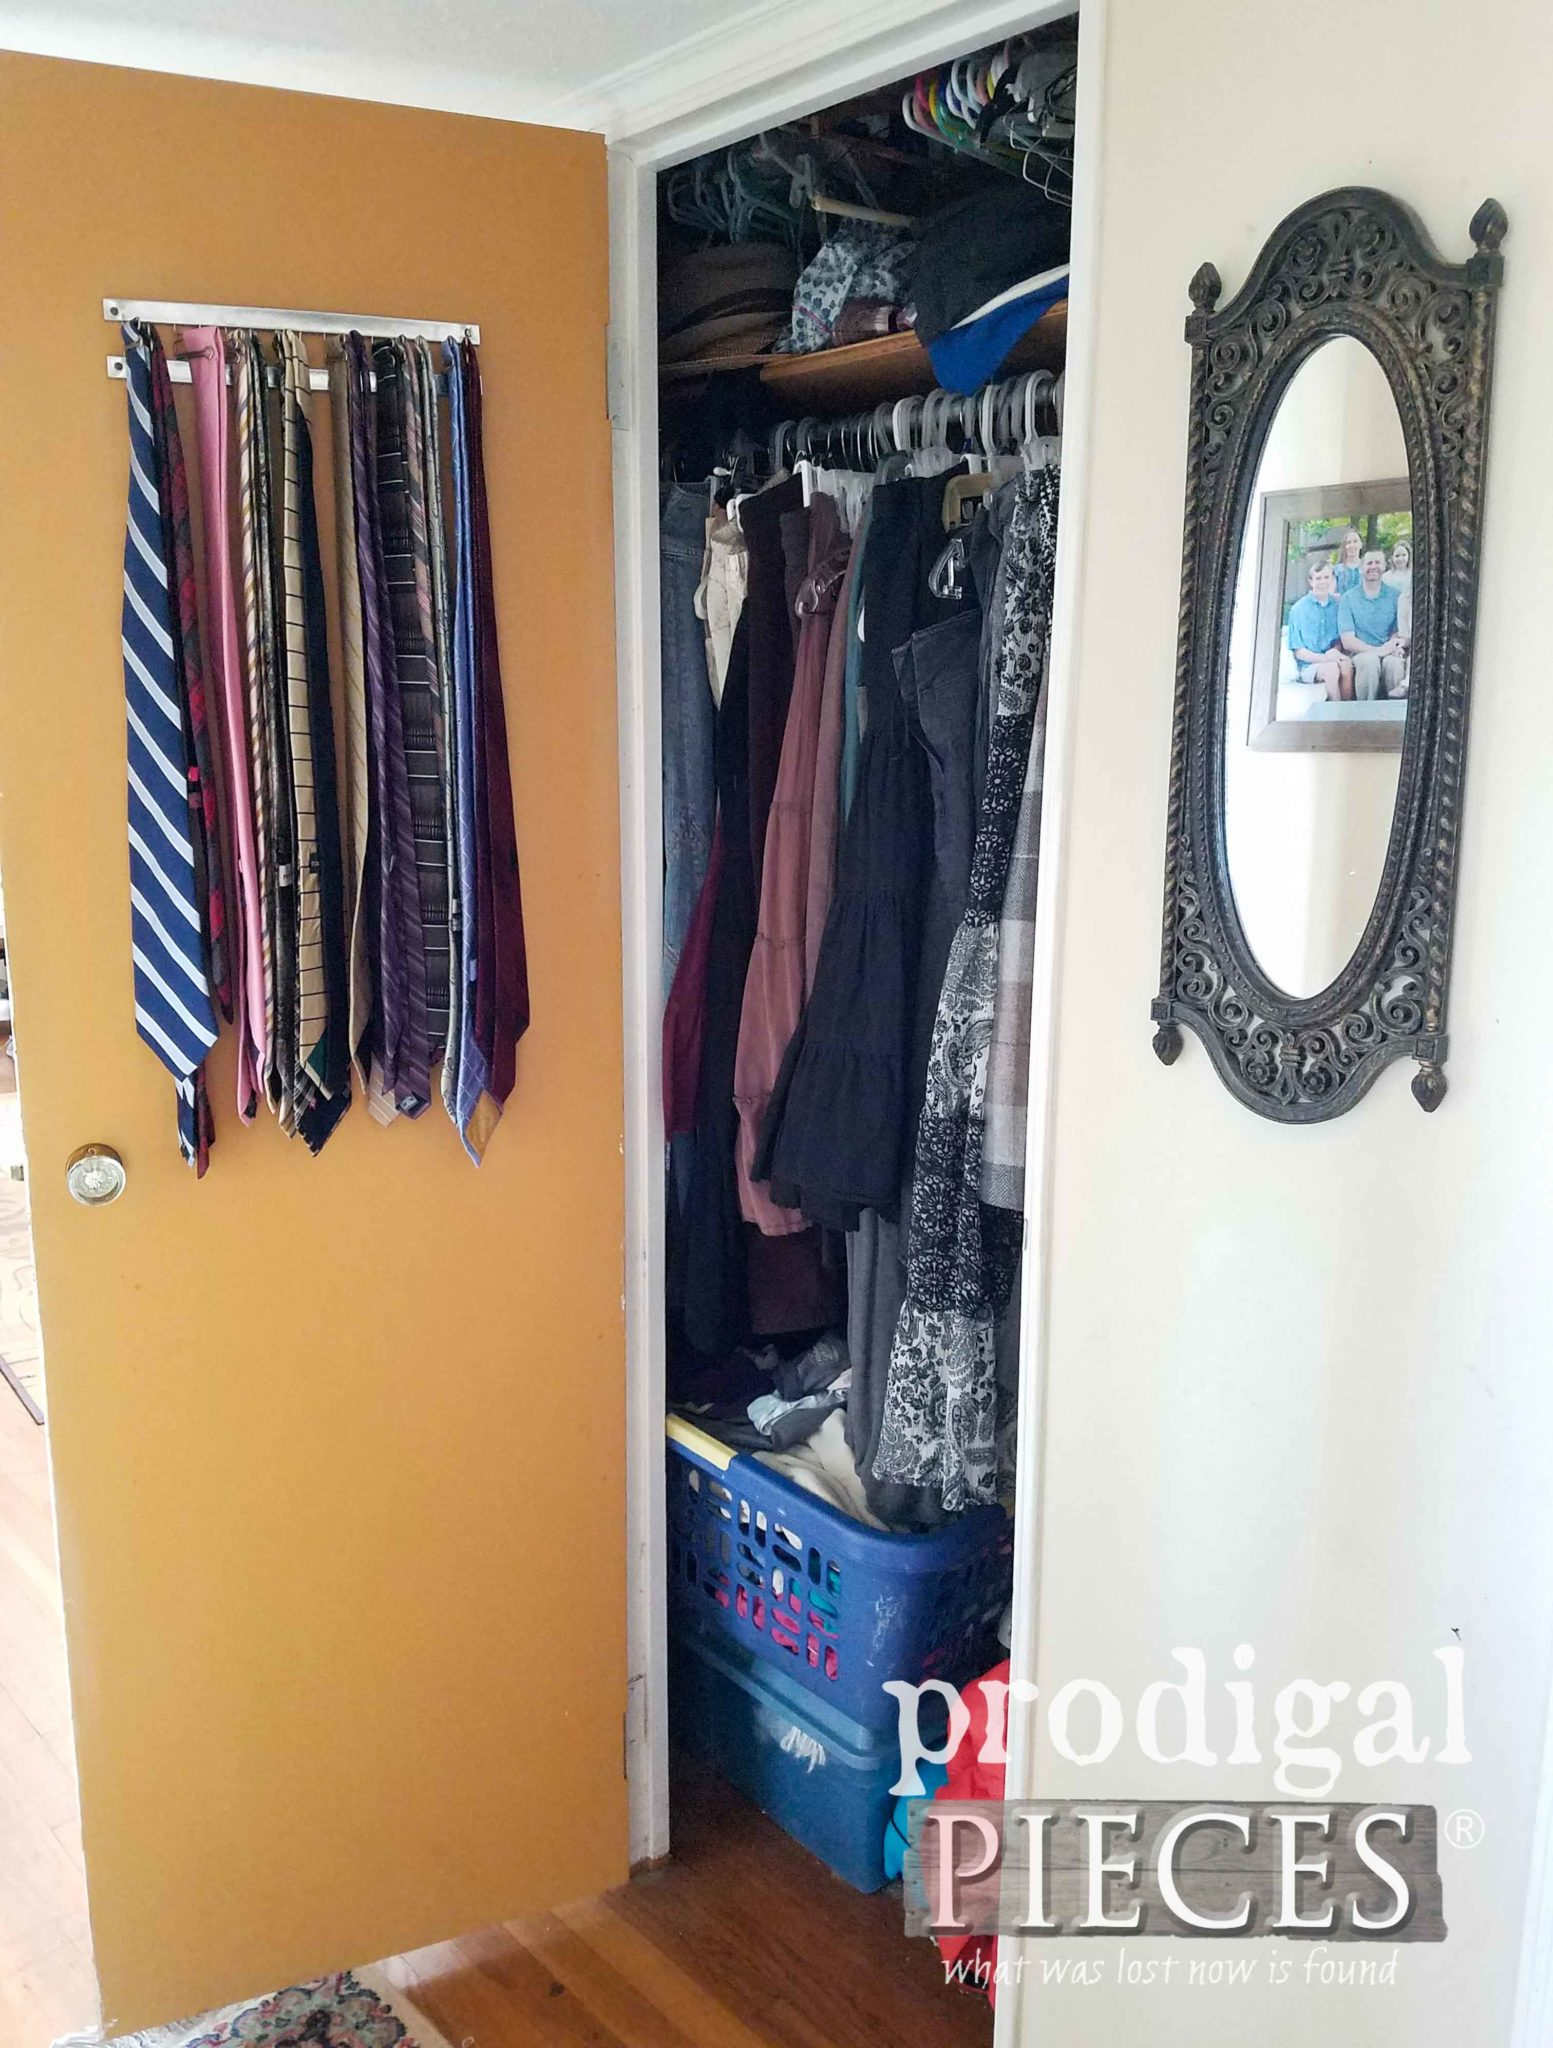 Messy Closet Before Spring Cleaning | progigalpieces.com